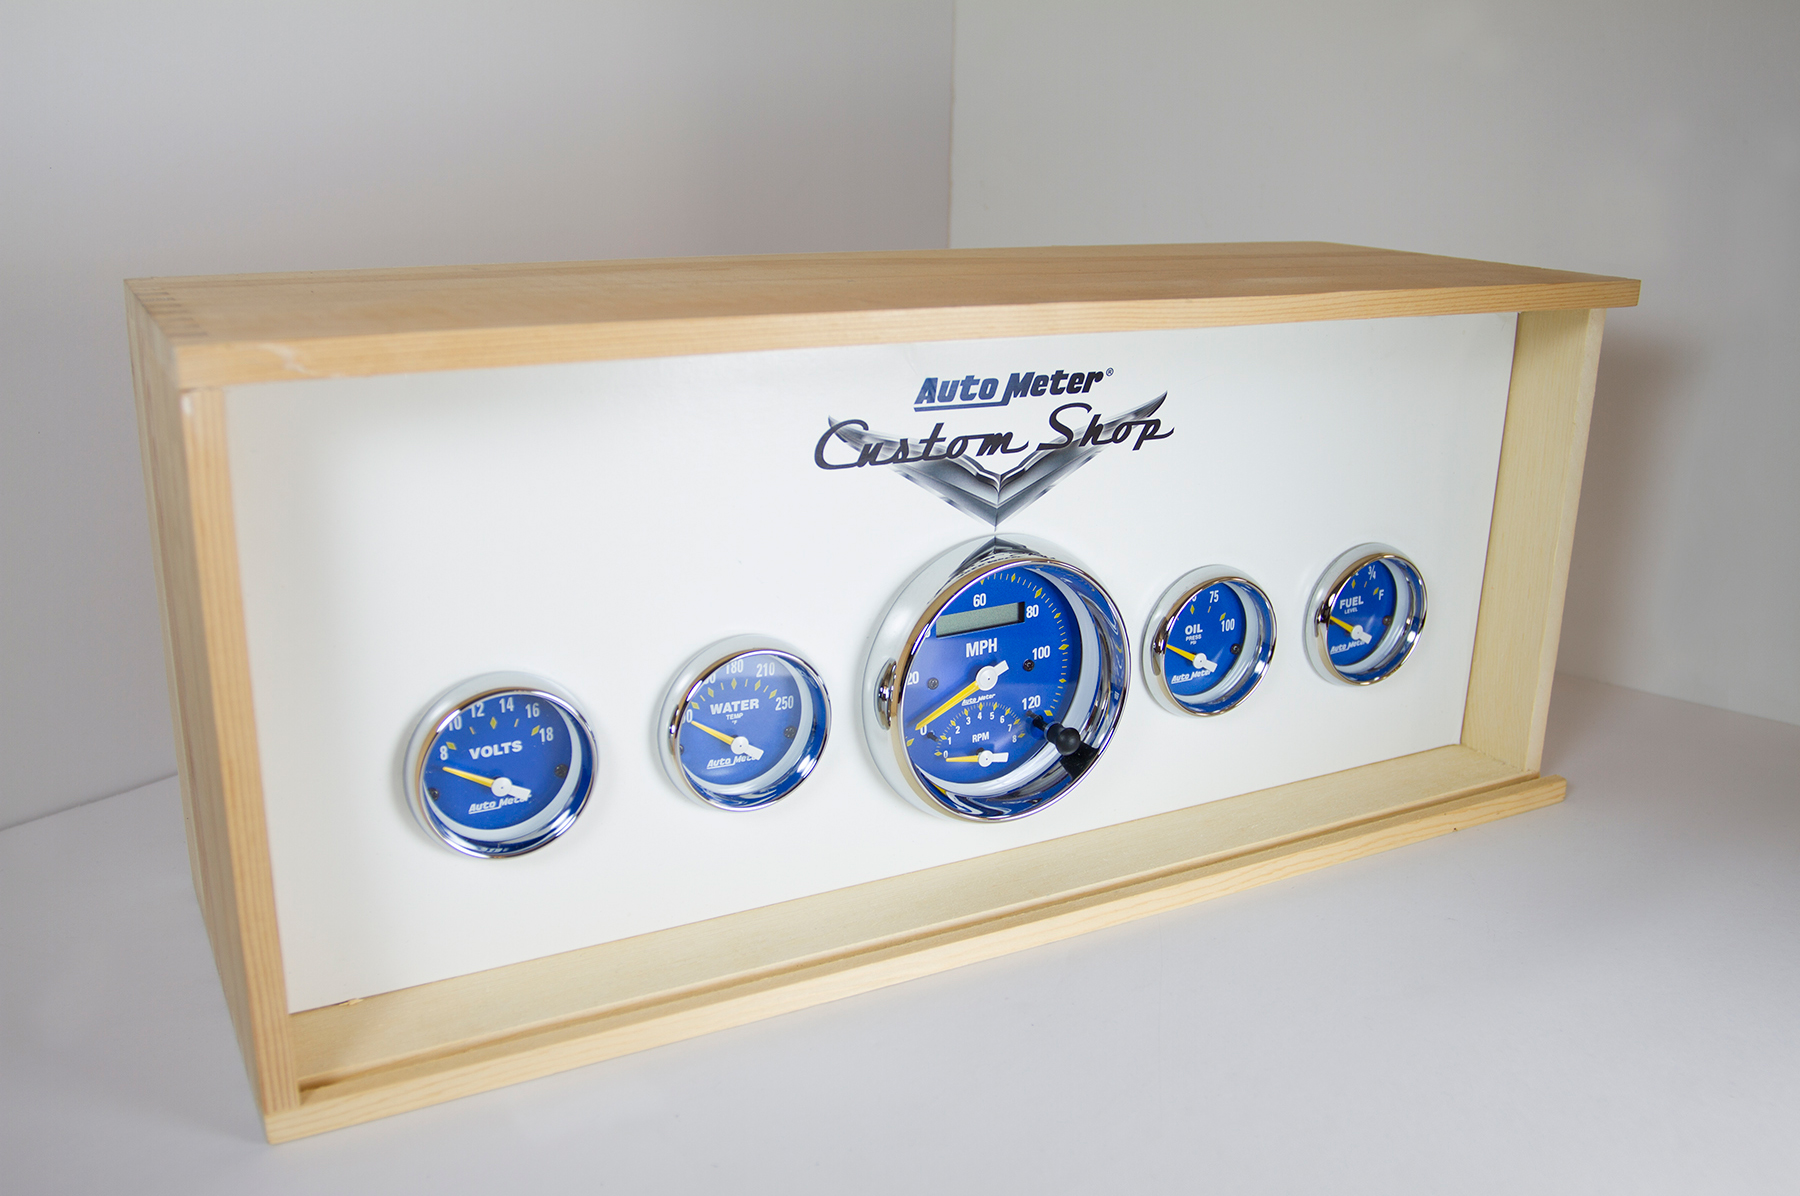 When your Auto Meter Custom Shop gauges show up, they'll come in a custom wood presentation box with a heat-burnished label. Custom colors for faces and needles are hand painted, all gauges are hand-assembled, and everything is made in the USA.